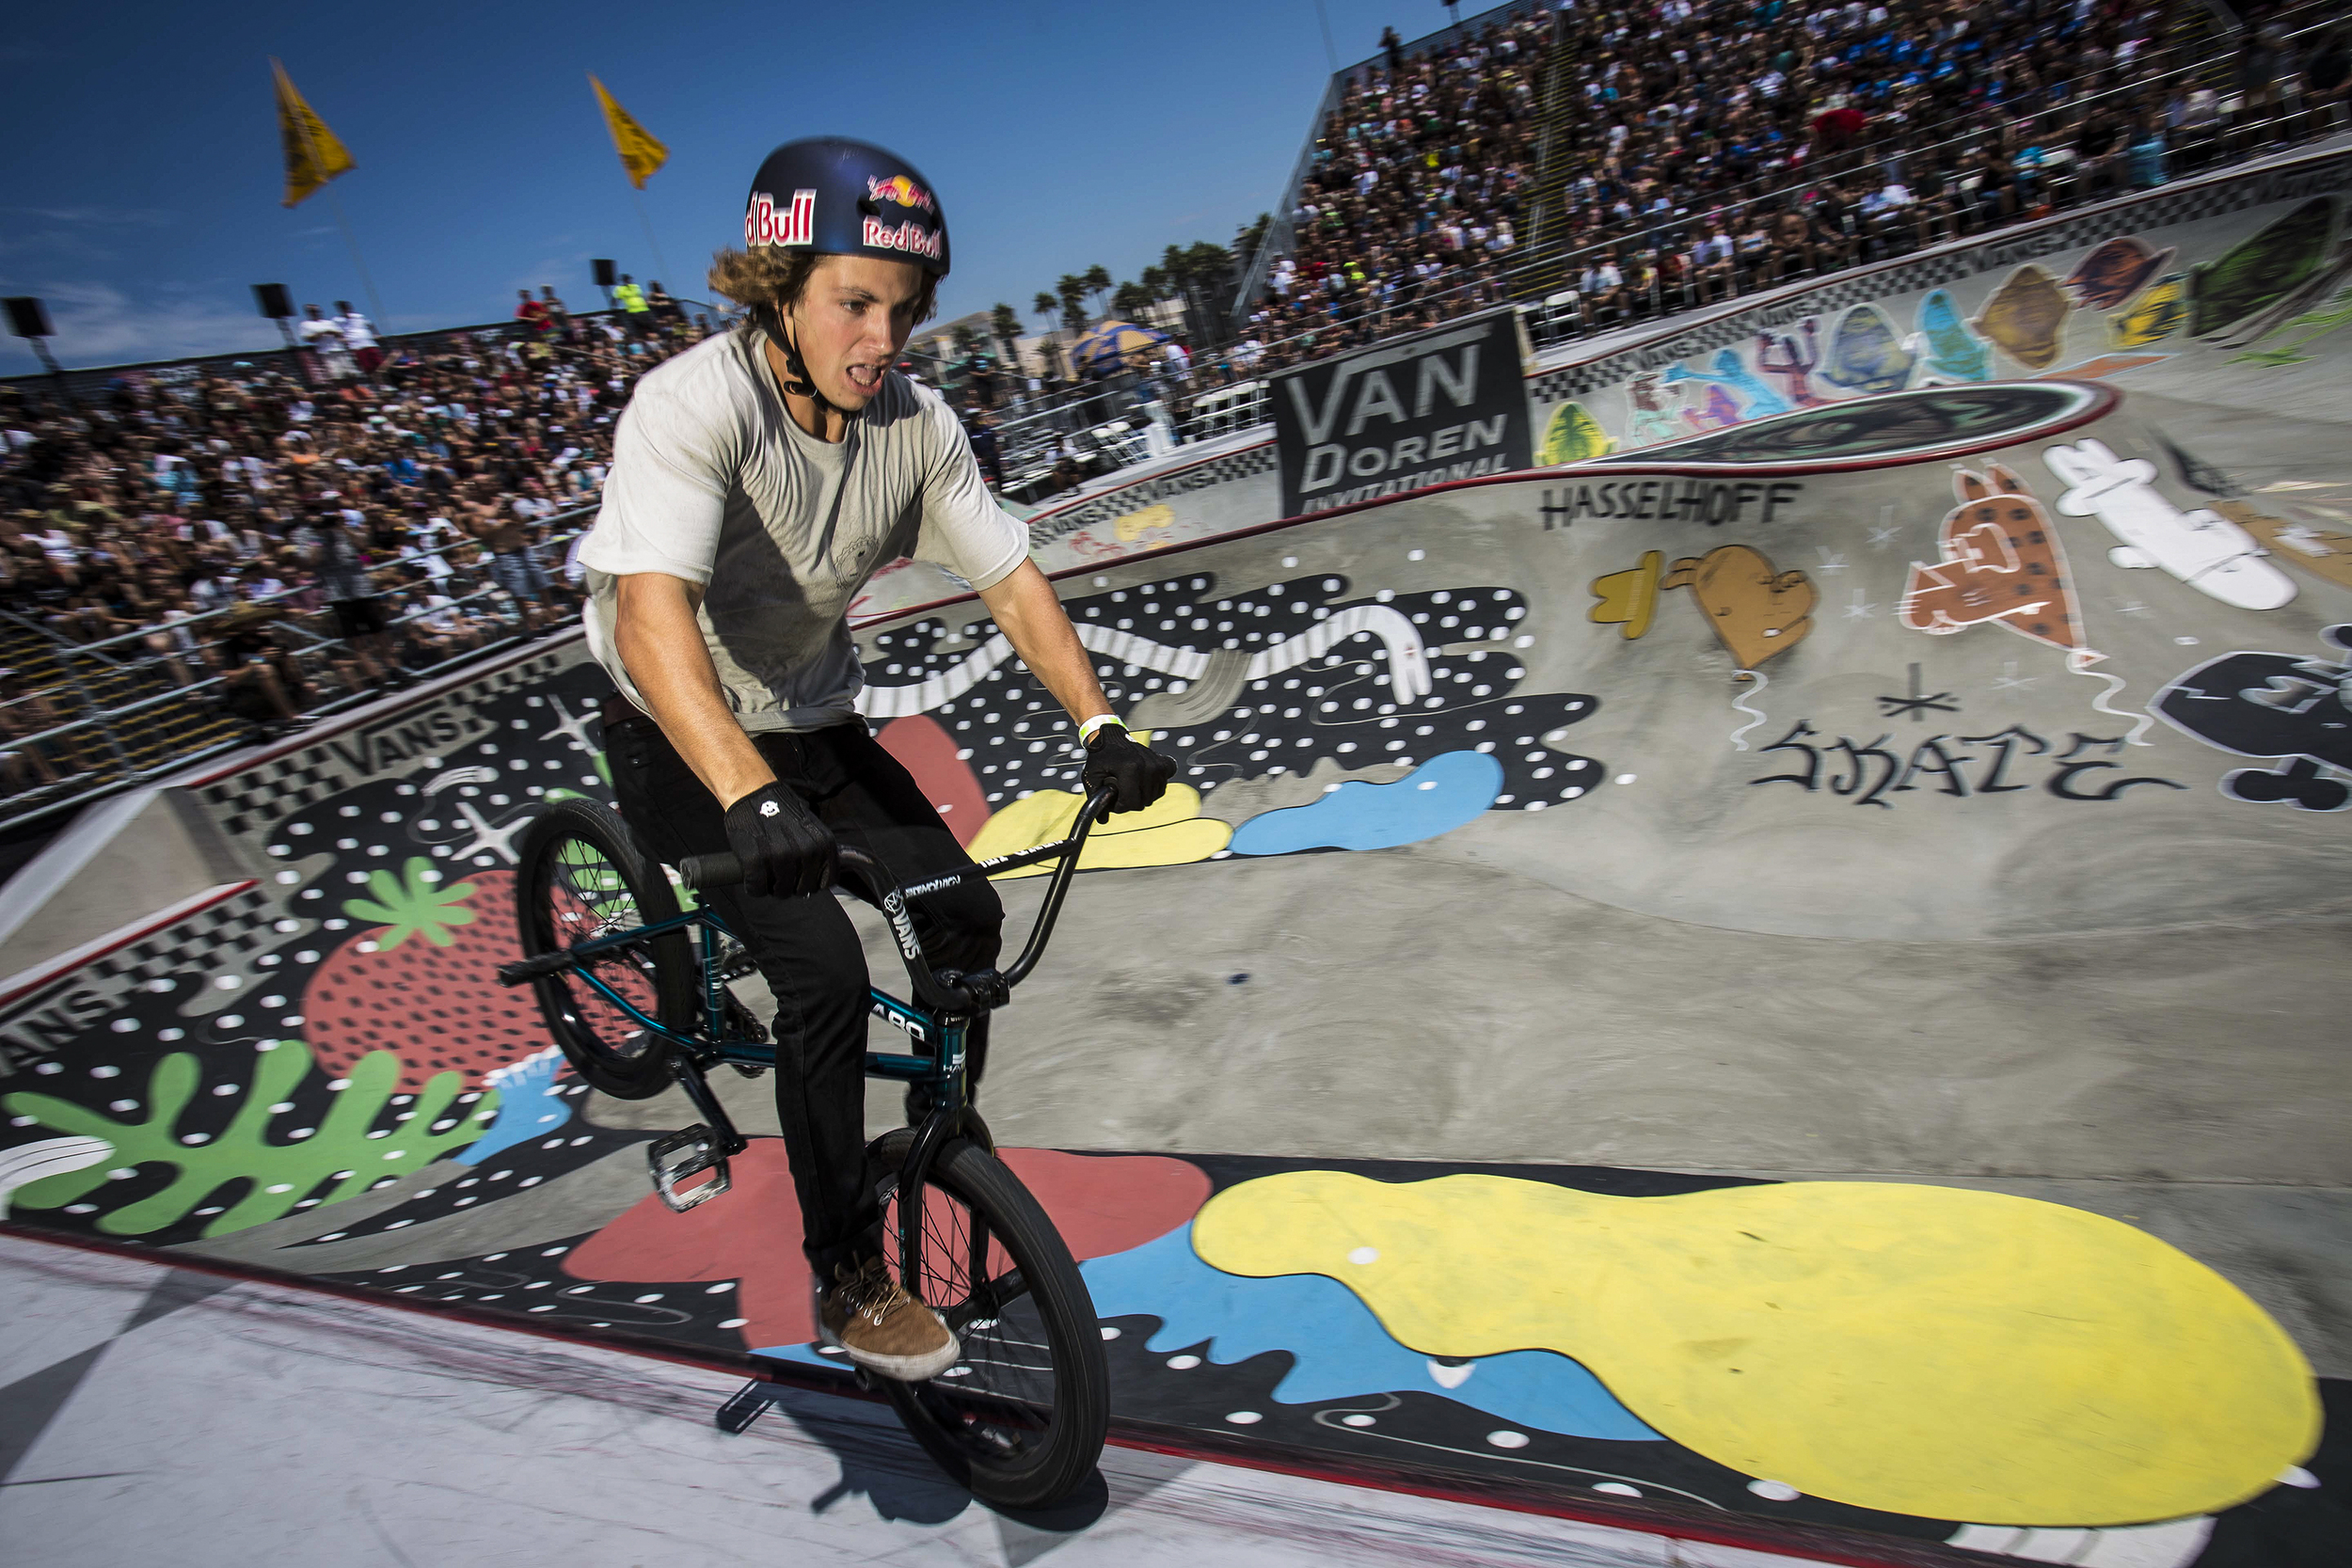 Tyler Fernengel competes in the Van Doren Invitational at Huntington Beach on the last day of the Vans US Open at the Huntington Beach Pier in Huntington Beach on Sunday August 03, 2014.